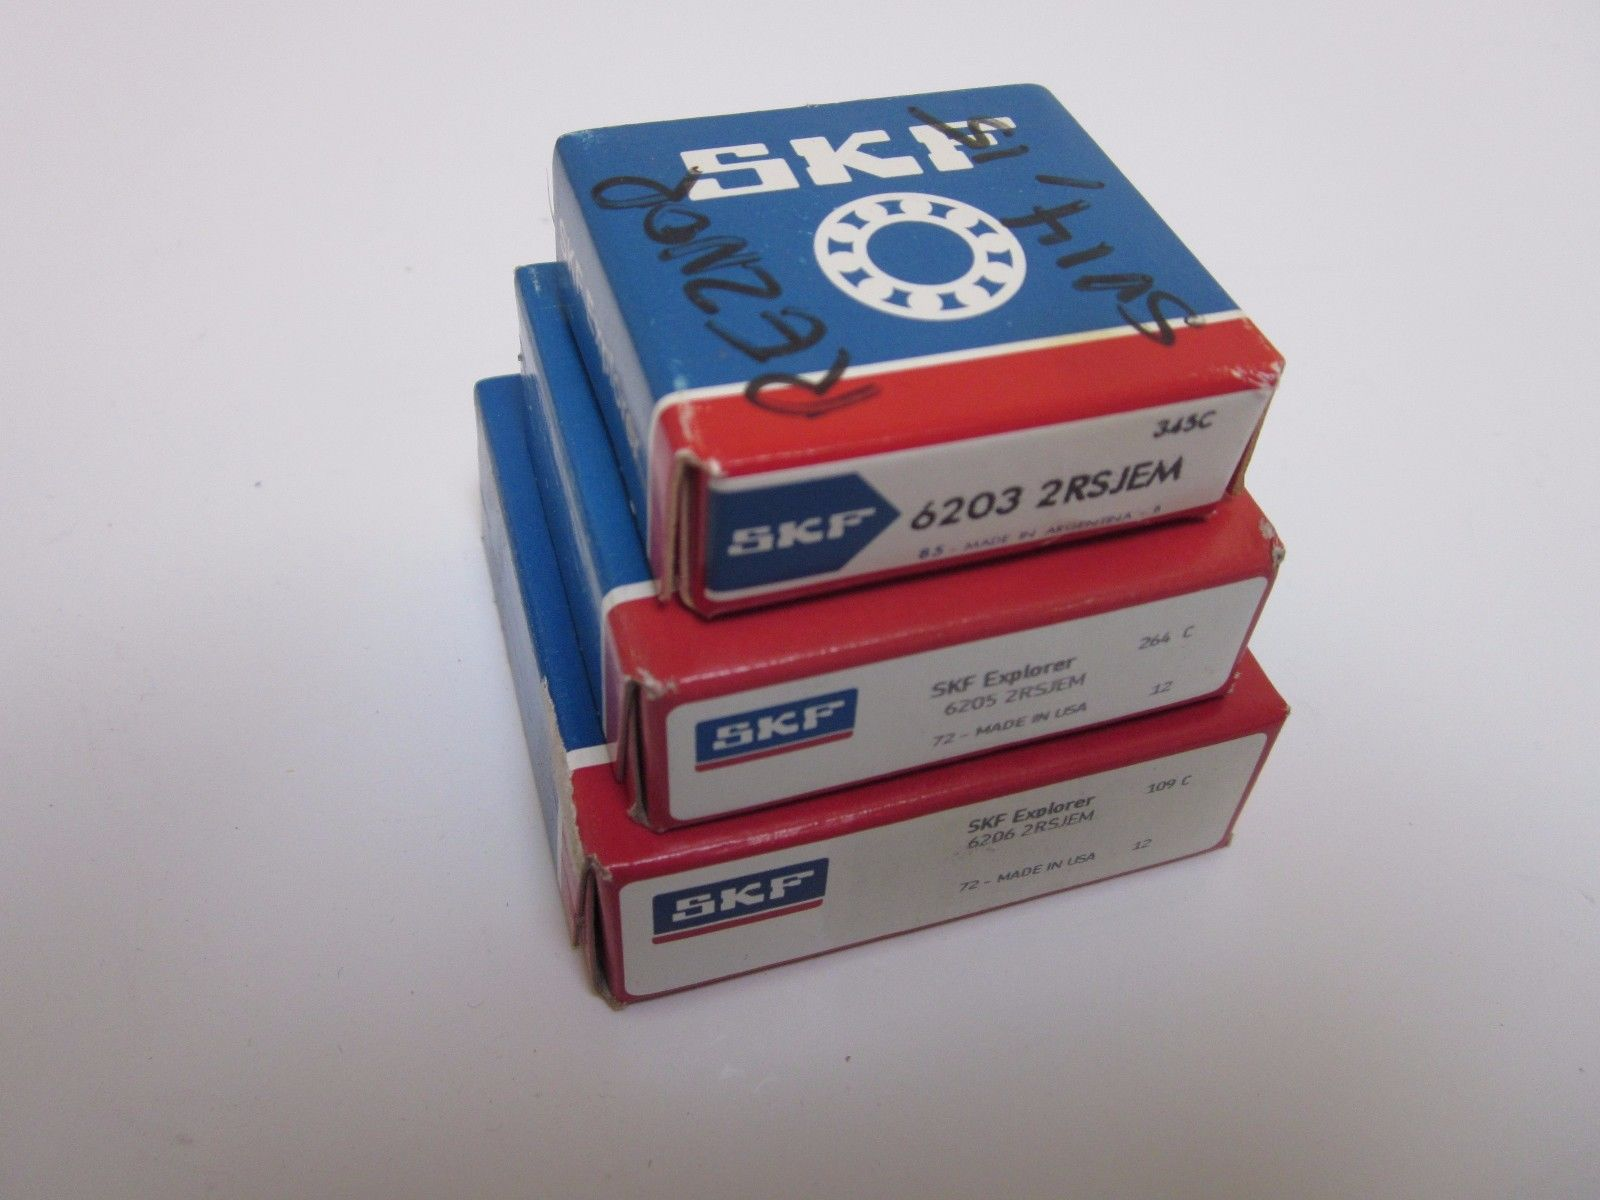 high temperature SKF  Sealed- Deep Groove Radial Ball Bearings, Mixed lot of 3 (2RSJEM)